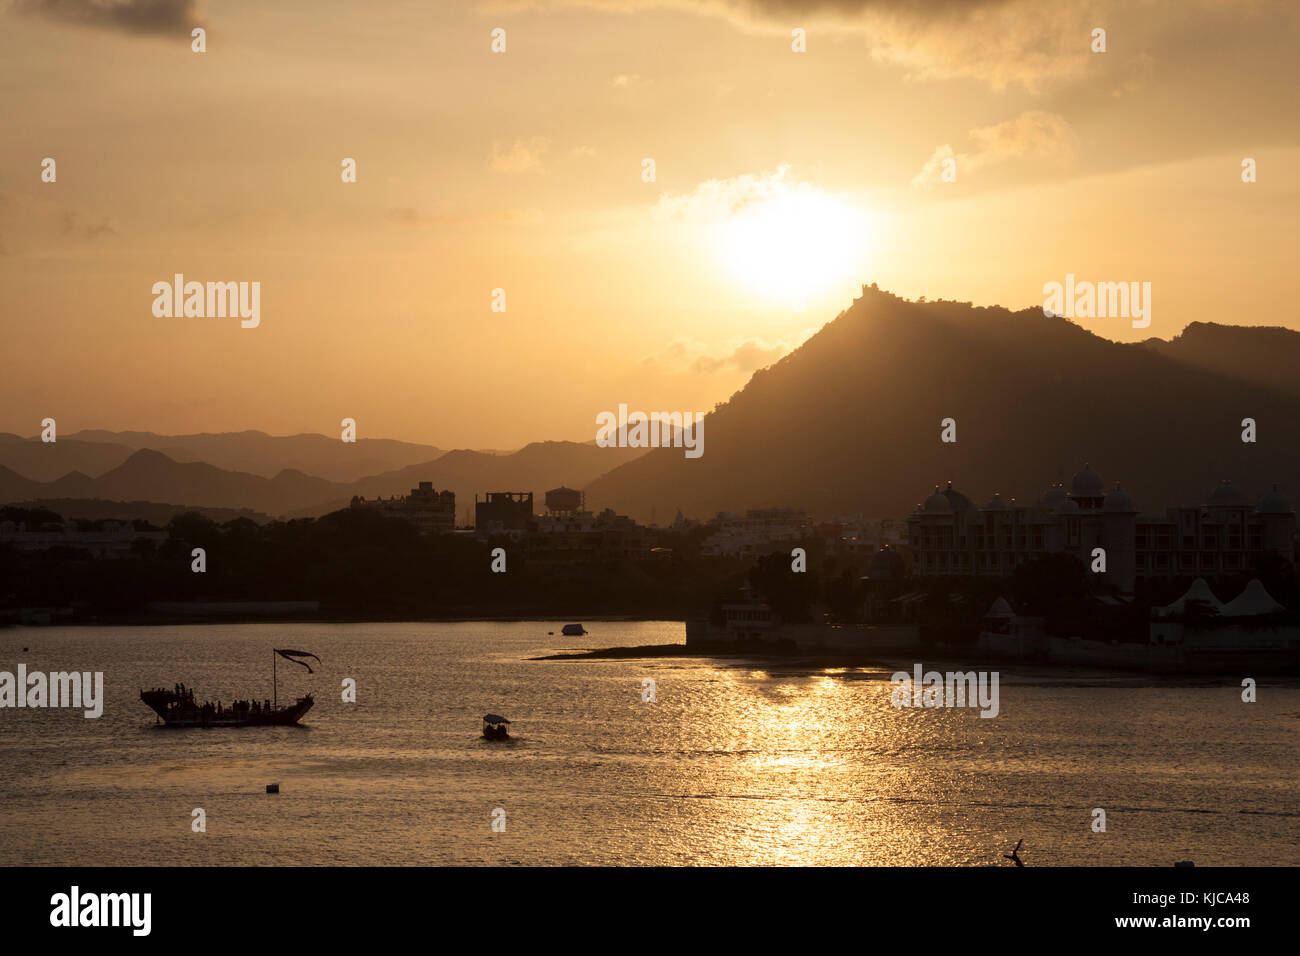 The sunsets over the Lake Pichola in Udaipur, India. - Stock Image